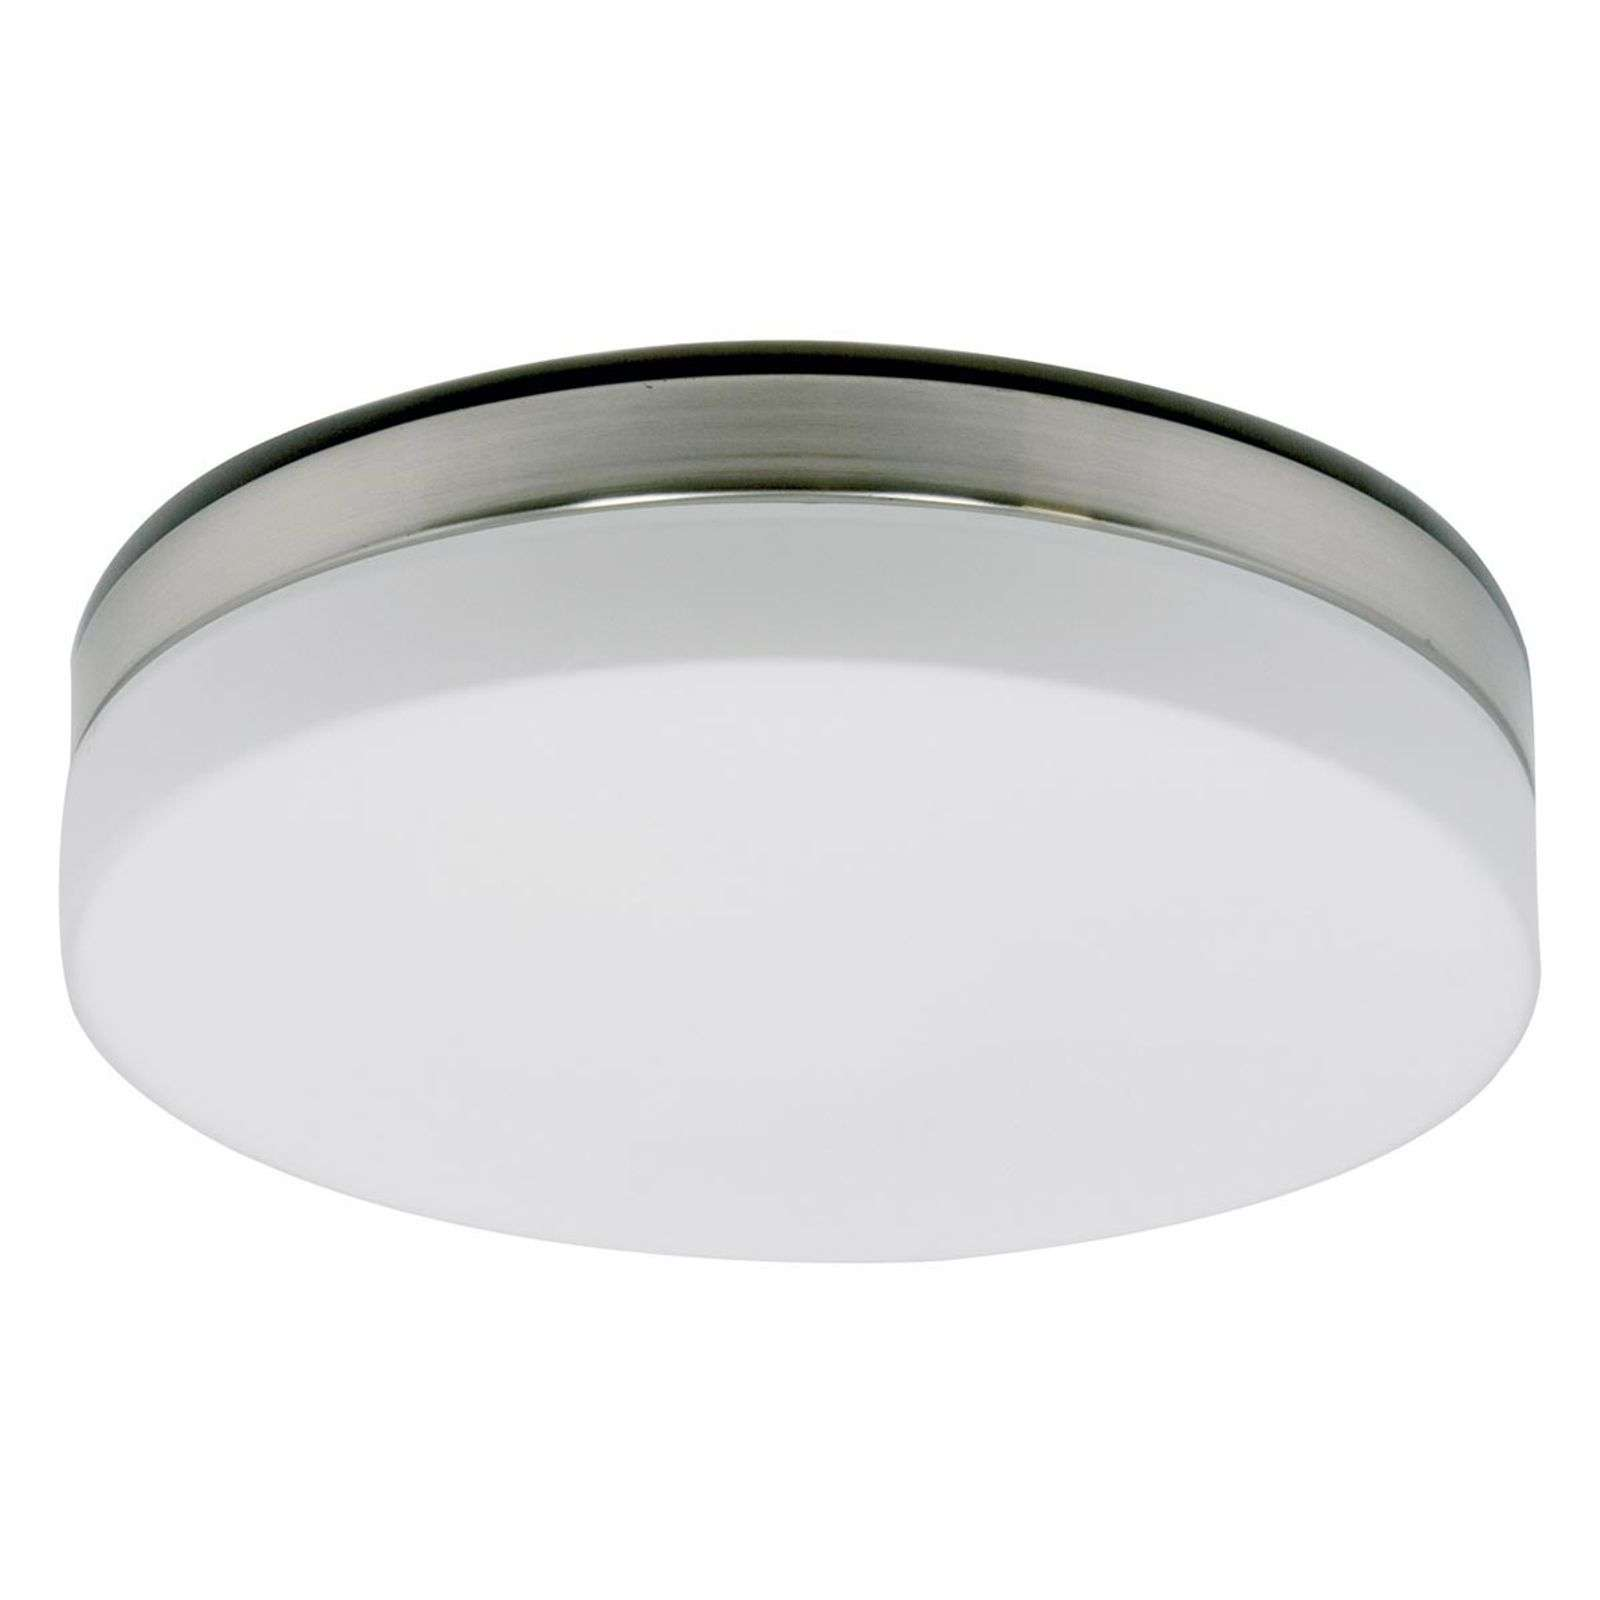 Dimbare LED bad plafondlamp Babylon 30 cm